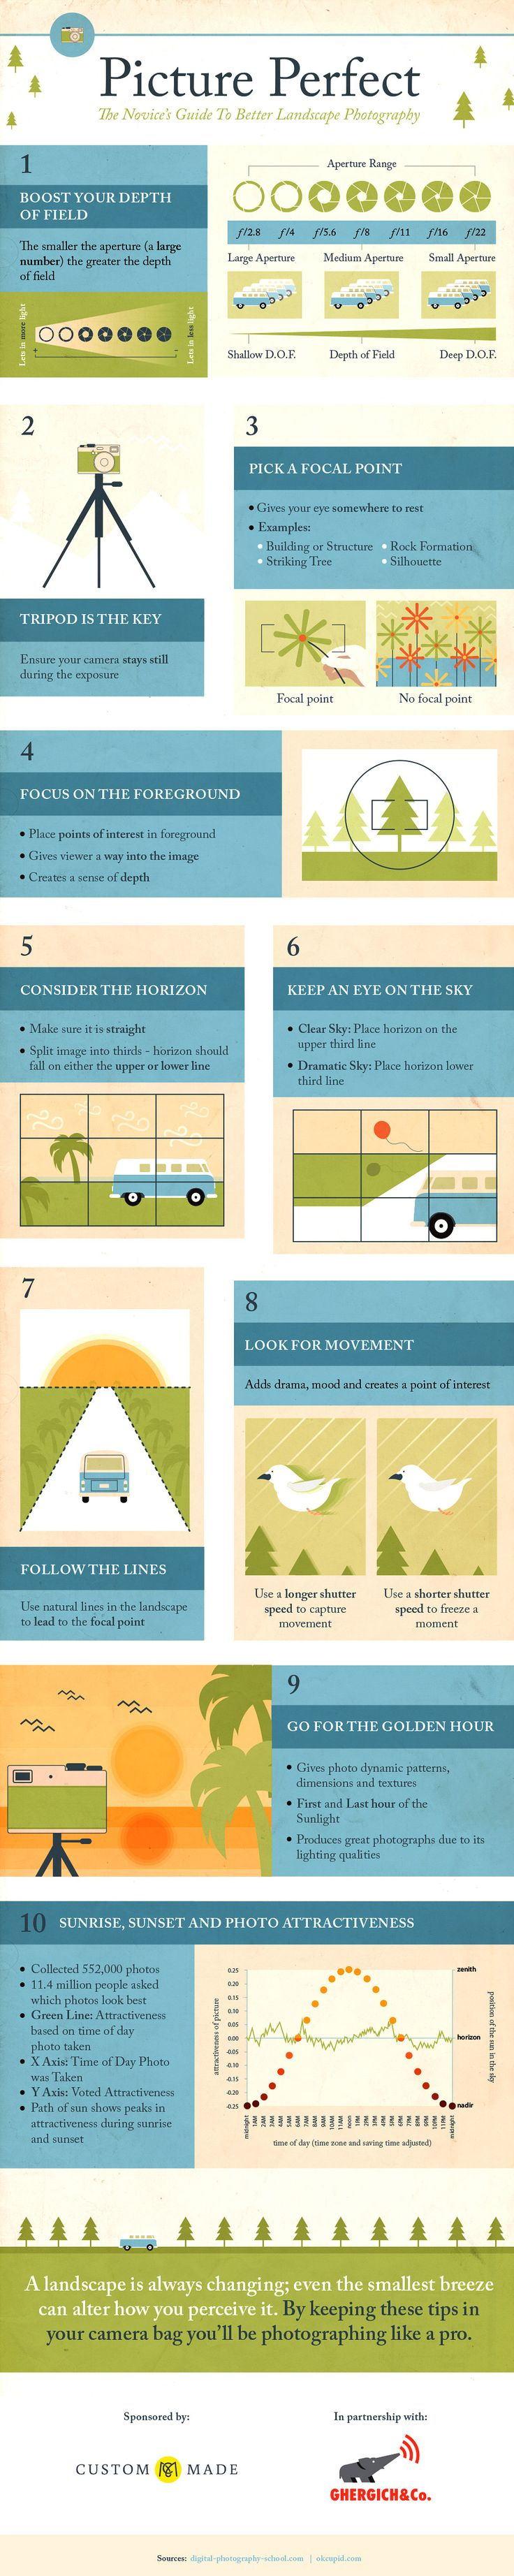 Picture Perfect Infographic - The Novice's Guide to better Landscape Photography - Pensez à vos illustrations d'articles !